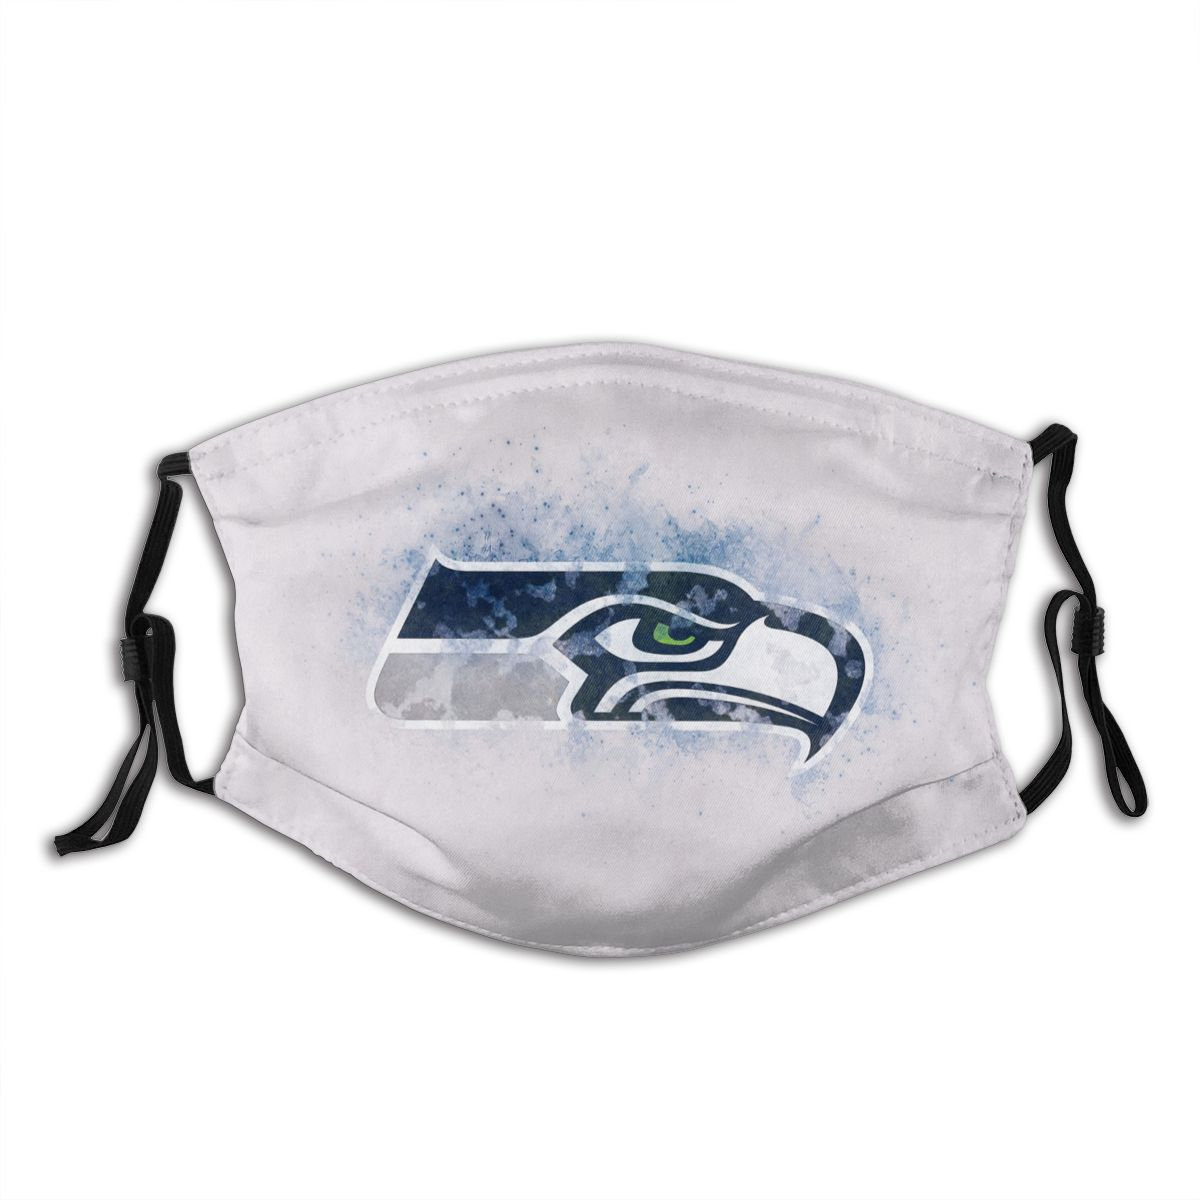 Seahawks Logo Adult Cloth Face Covering With Filter